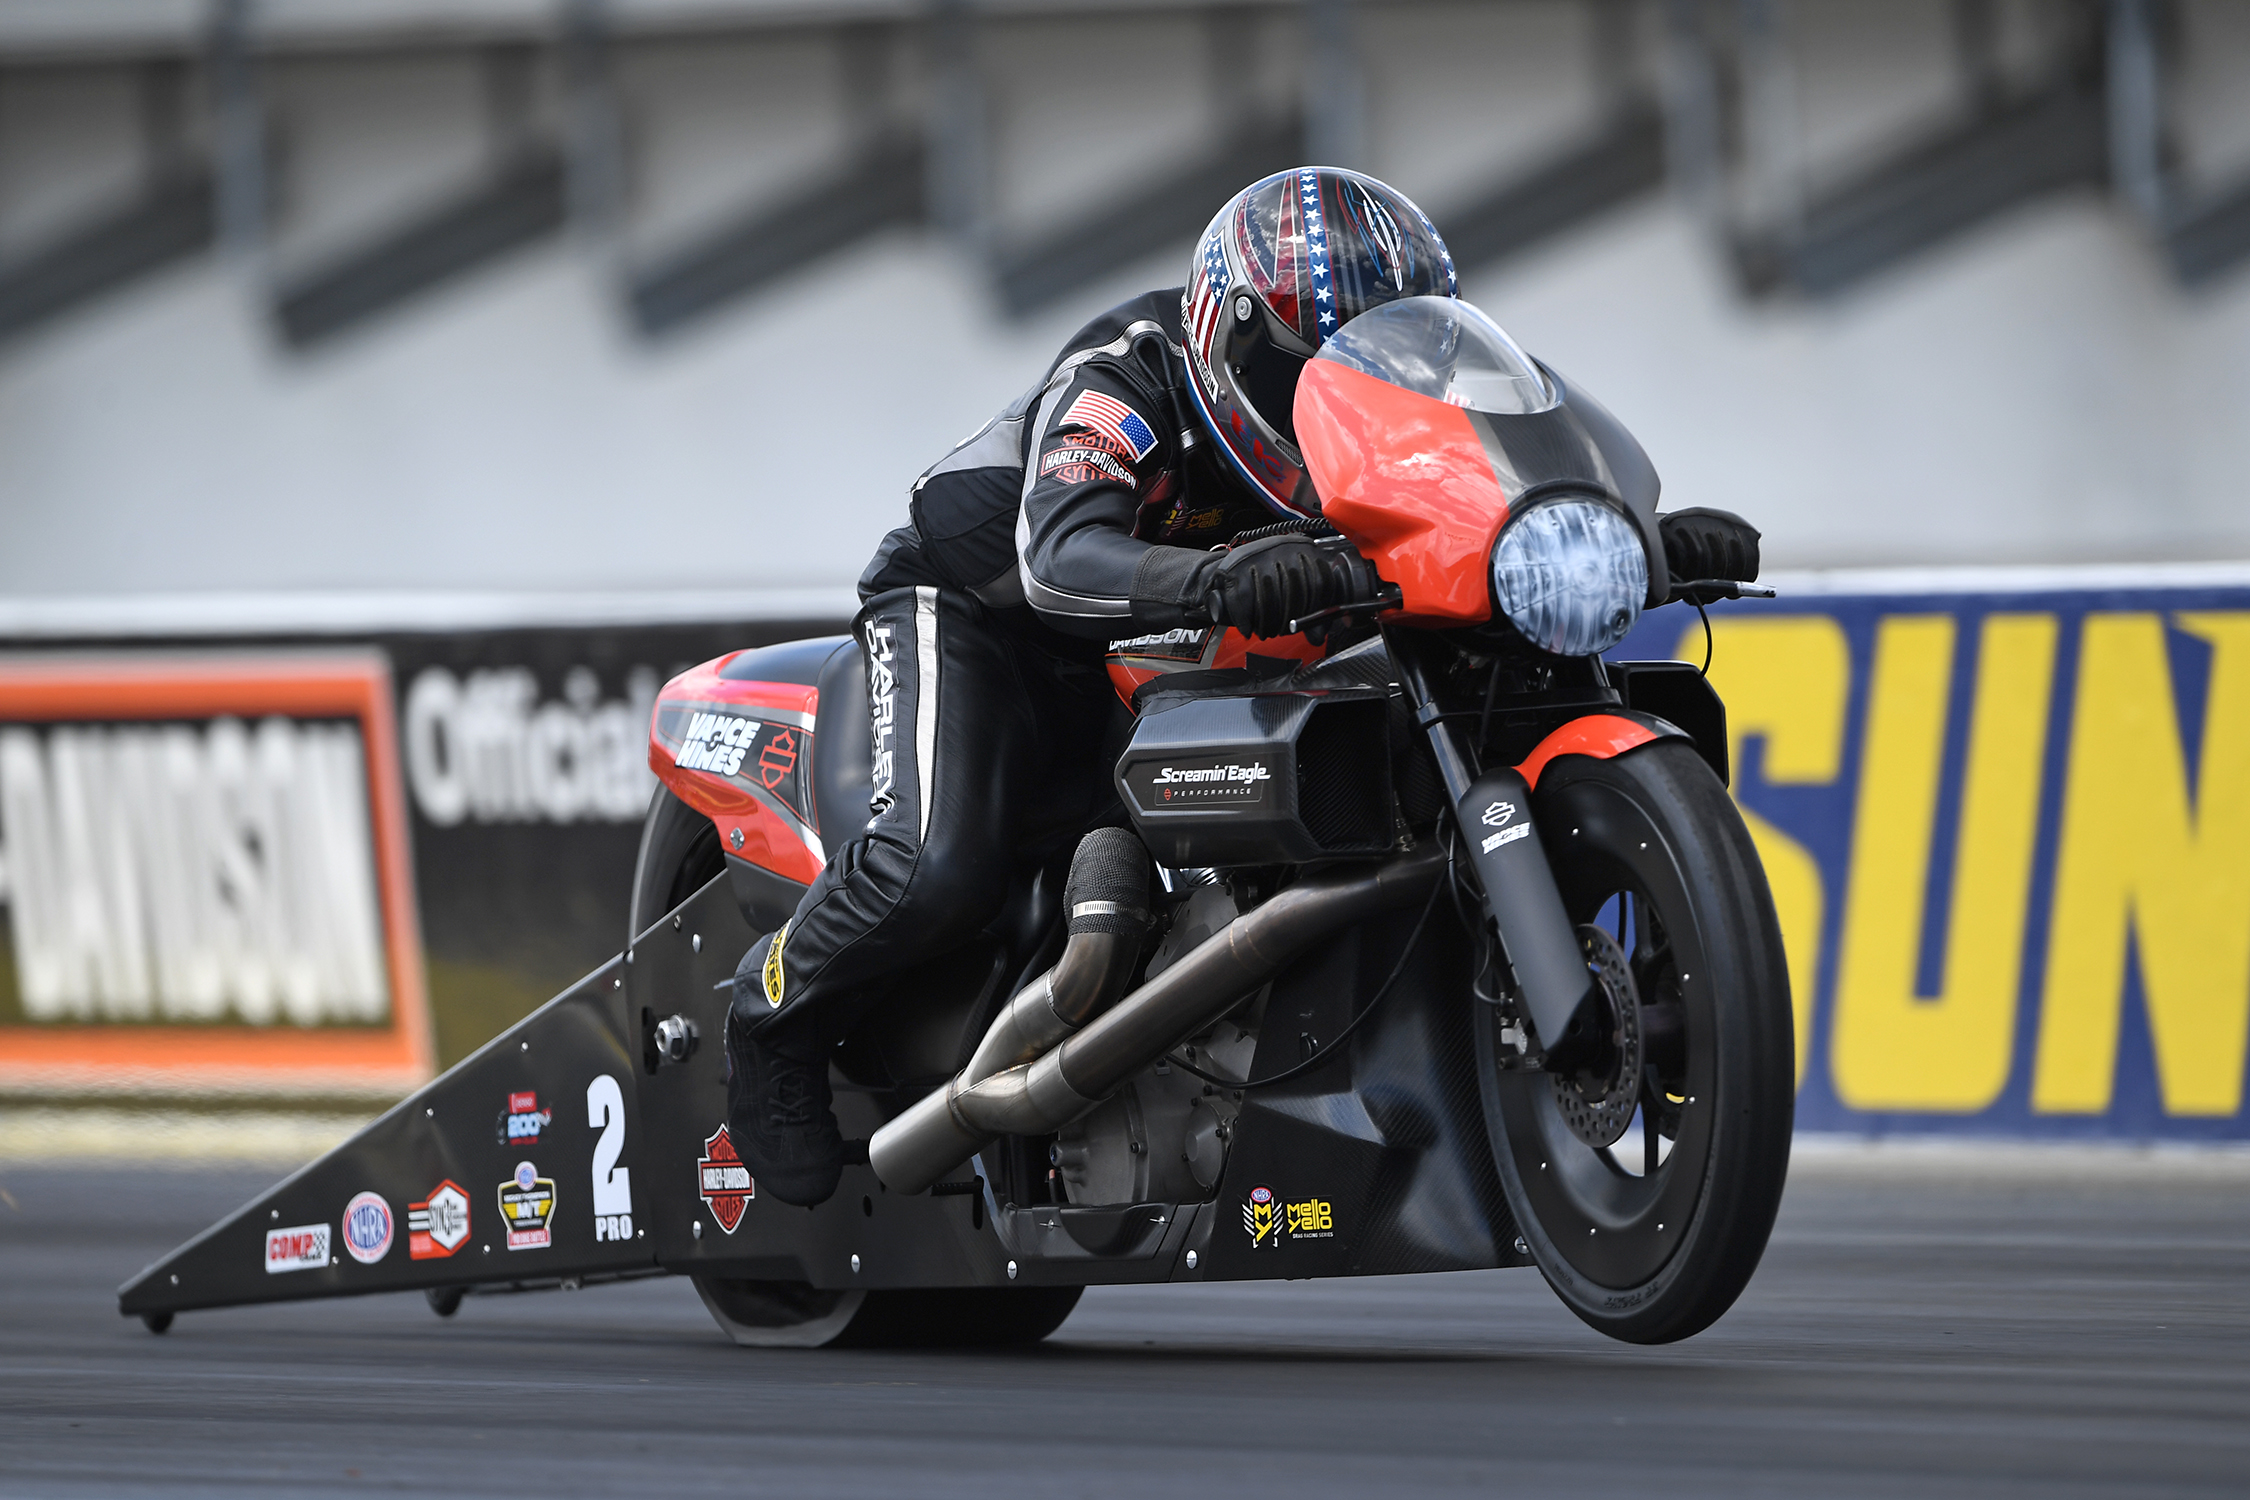 Pro Stock Motorcycle - Eddie Krawiec - AAA Texas NHRA Fallnationals action